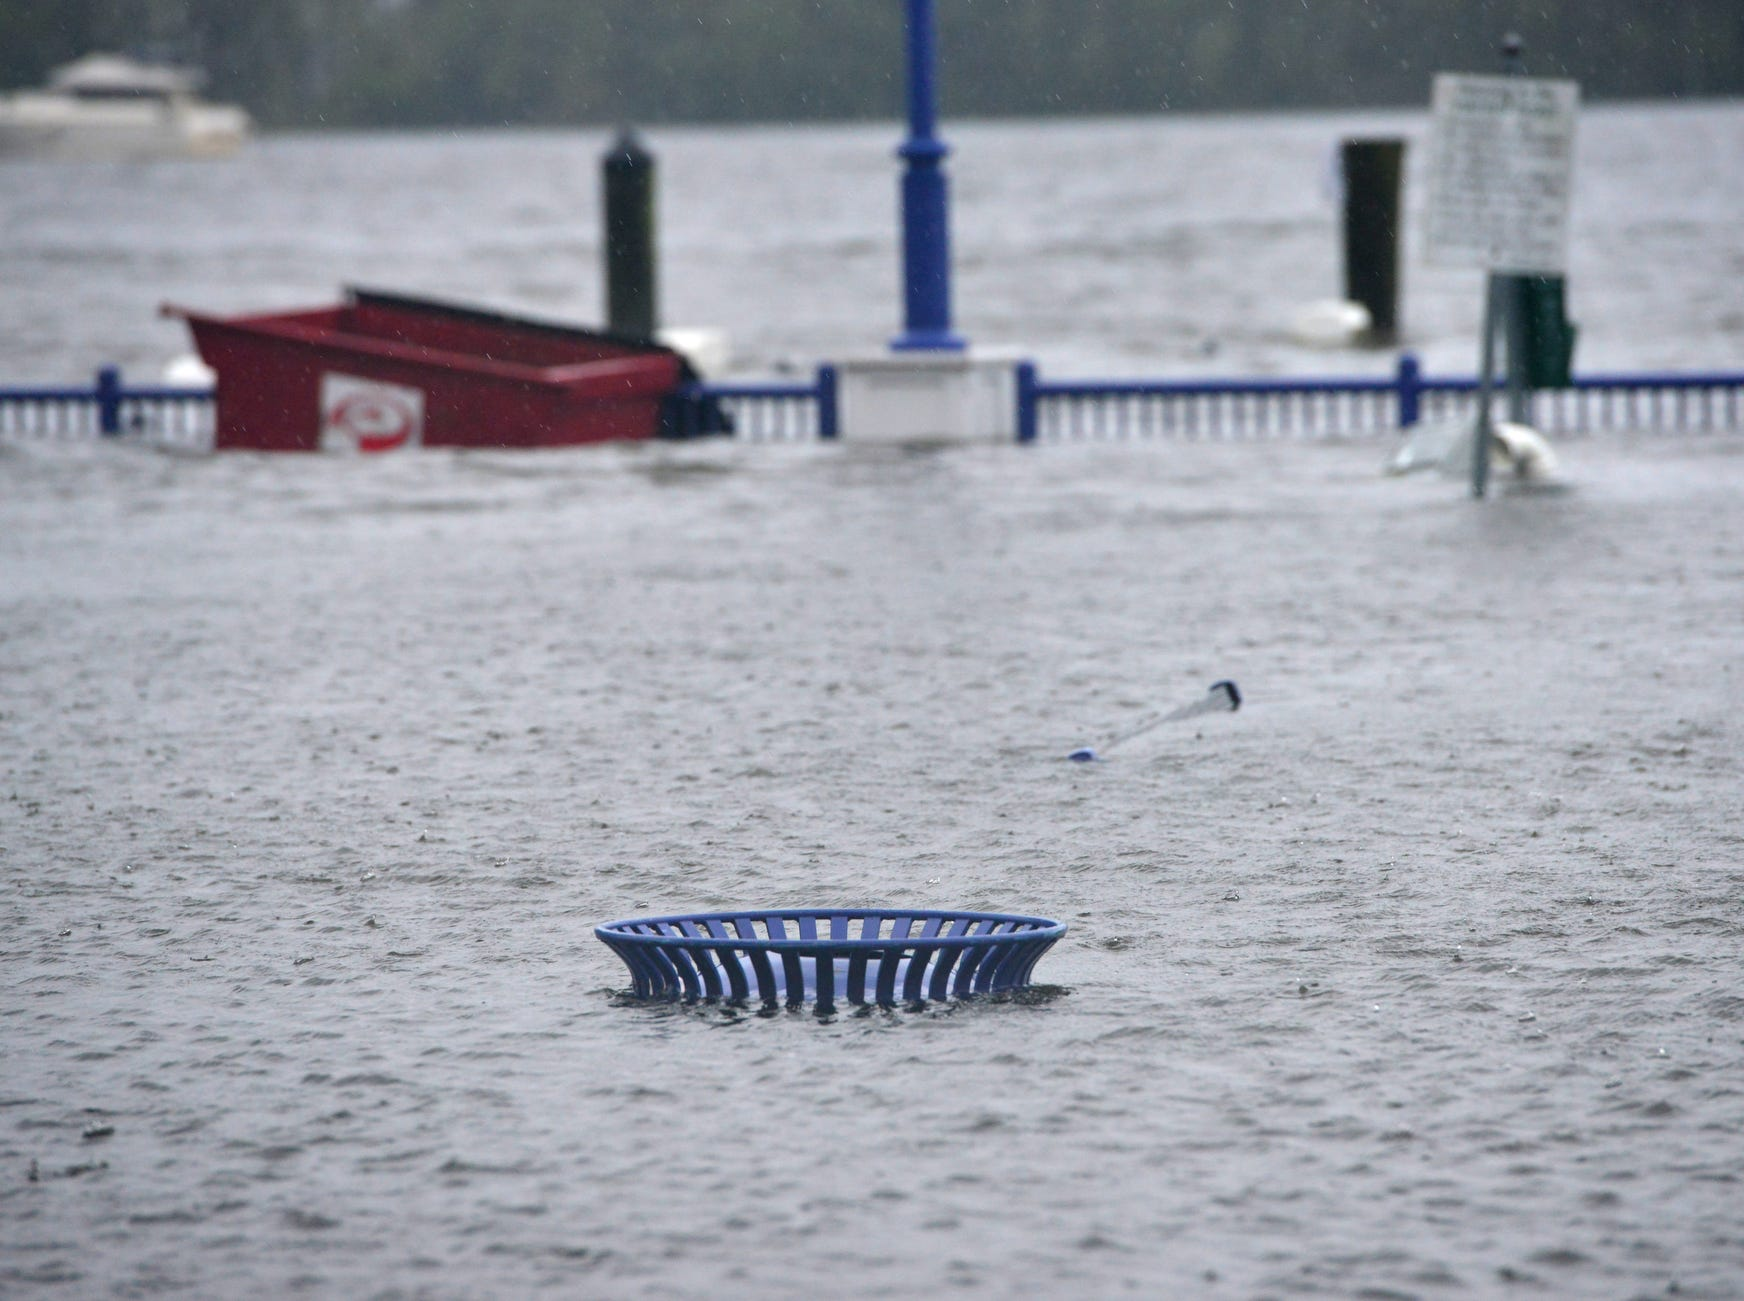 Rains from Hurricane Florence flooded park on the Pamlico River in downtown Washington, N.C.